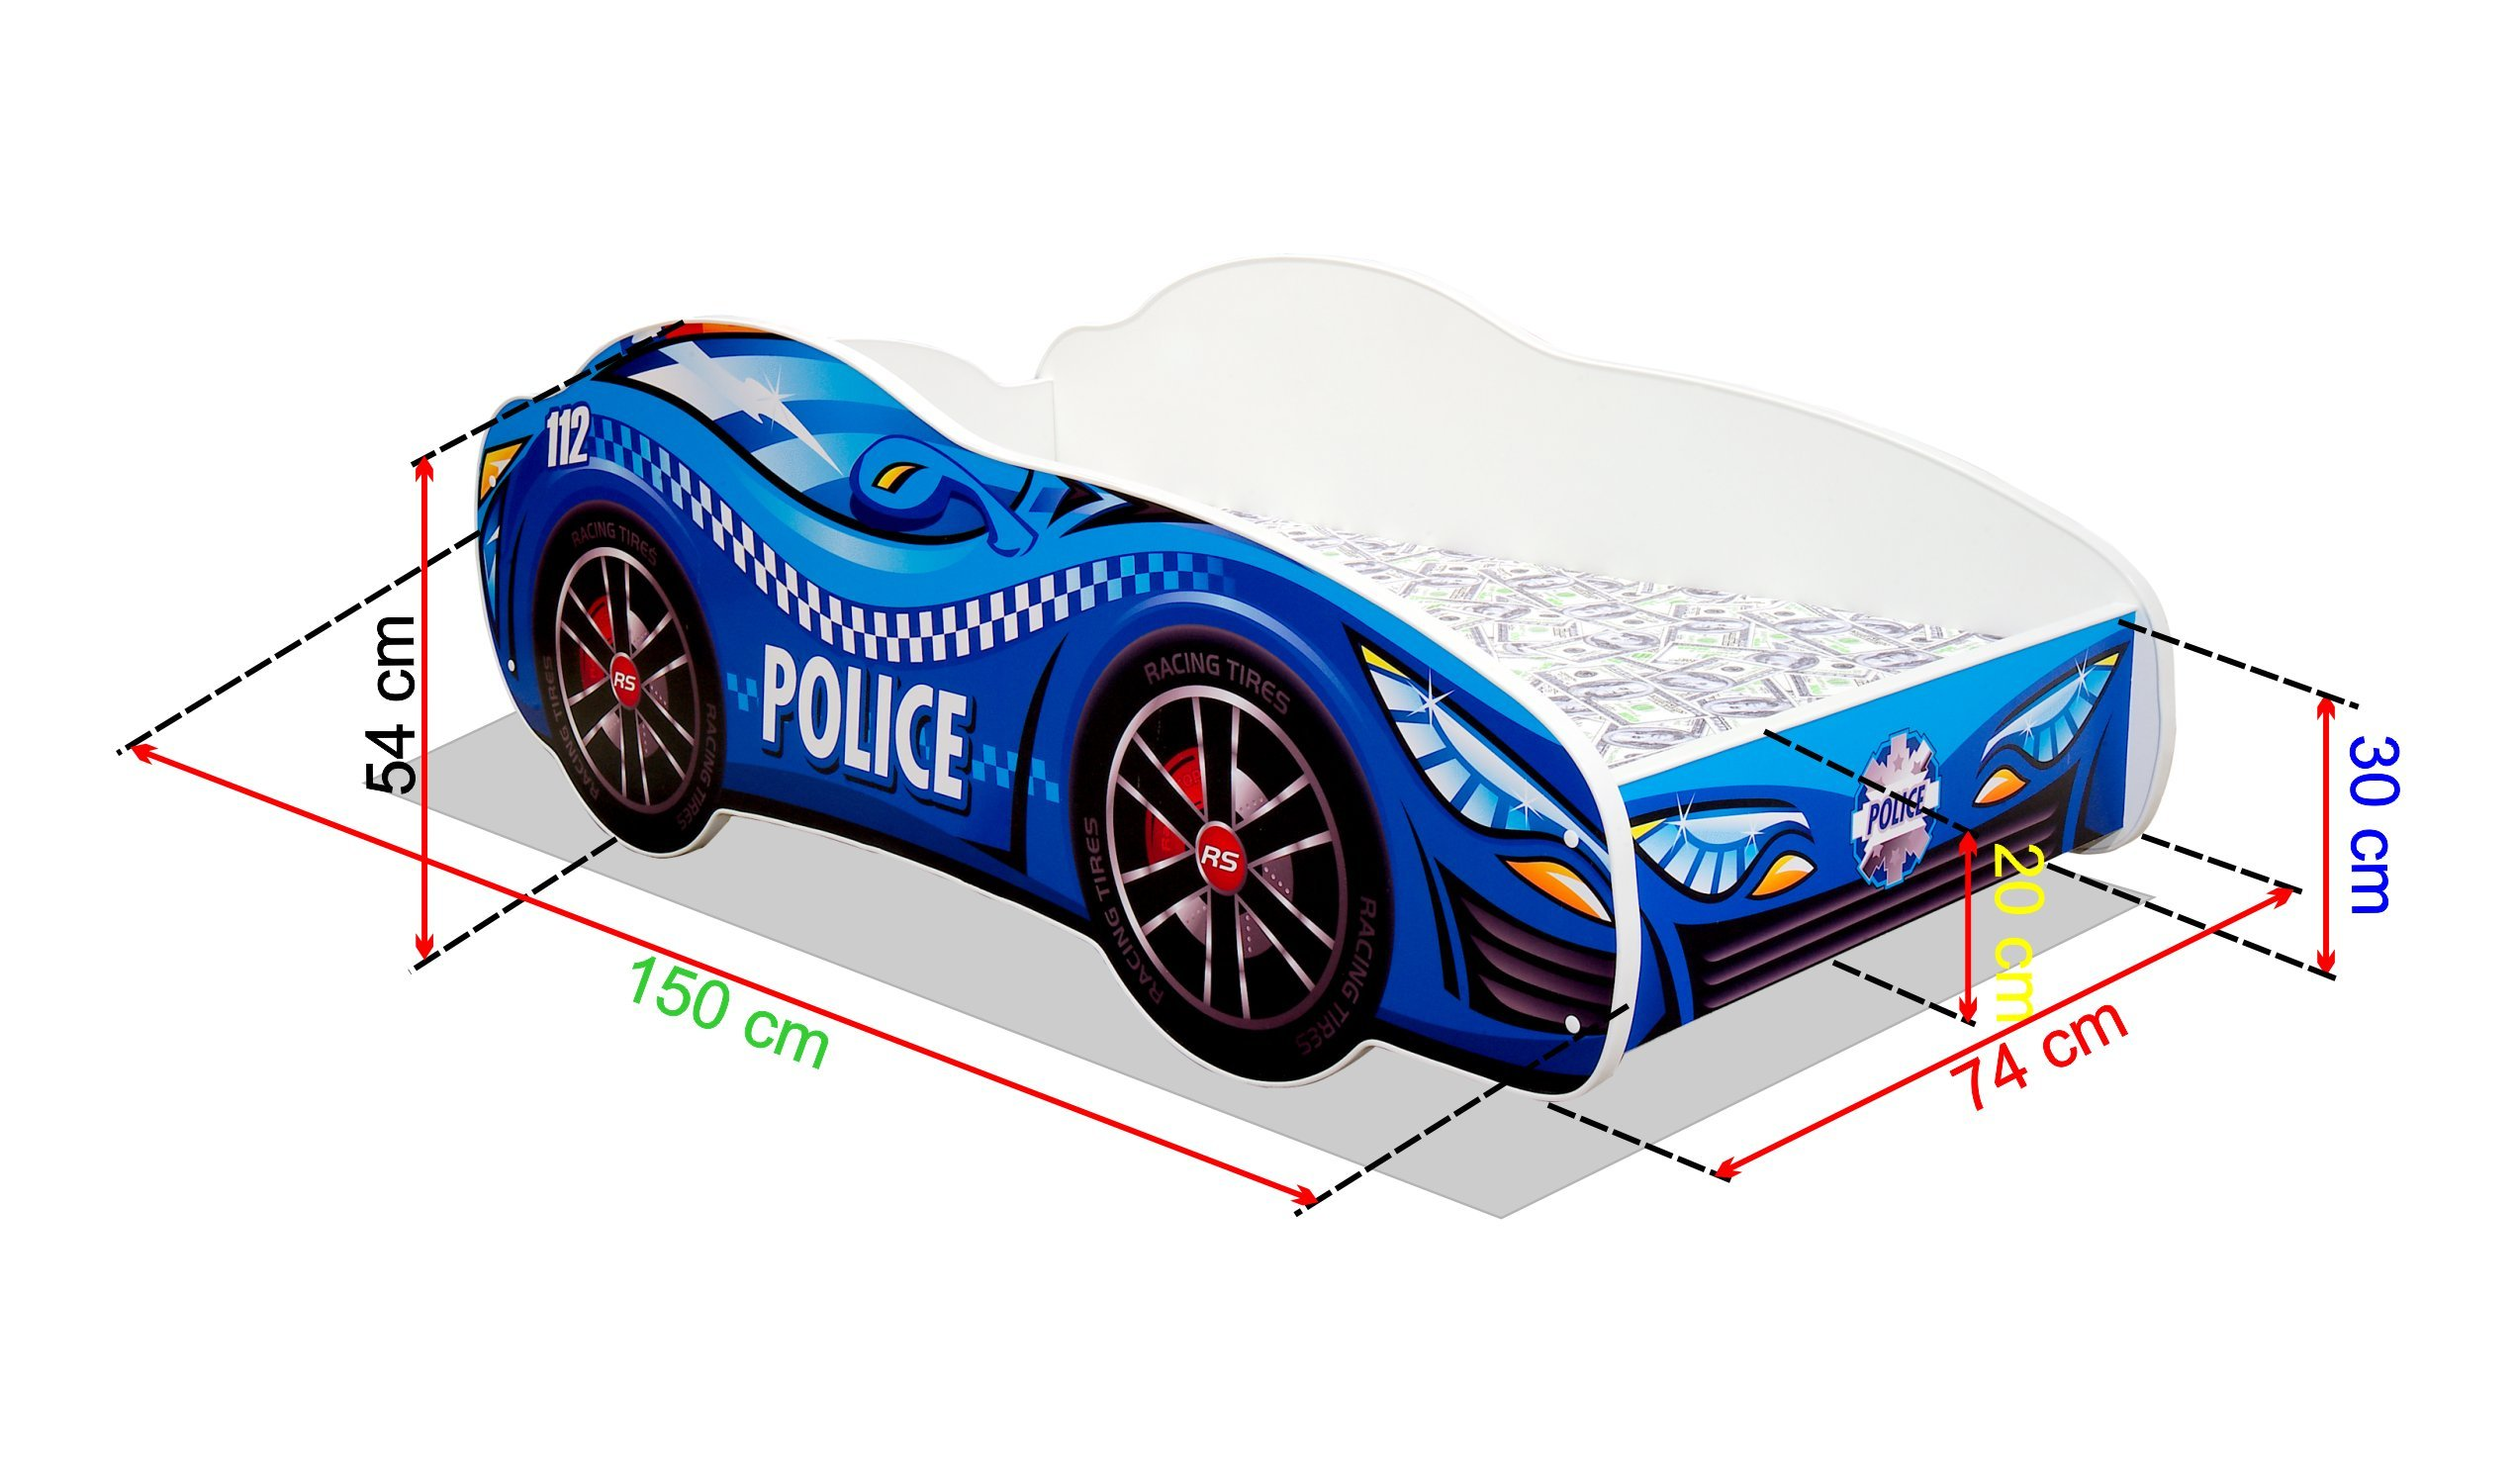 Toddler Boy Bed Kids Bed Junior Children's Single Car Bed with Mattress Included - Racing Car (Police, 140x70)  Wonderhome24